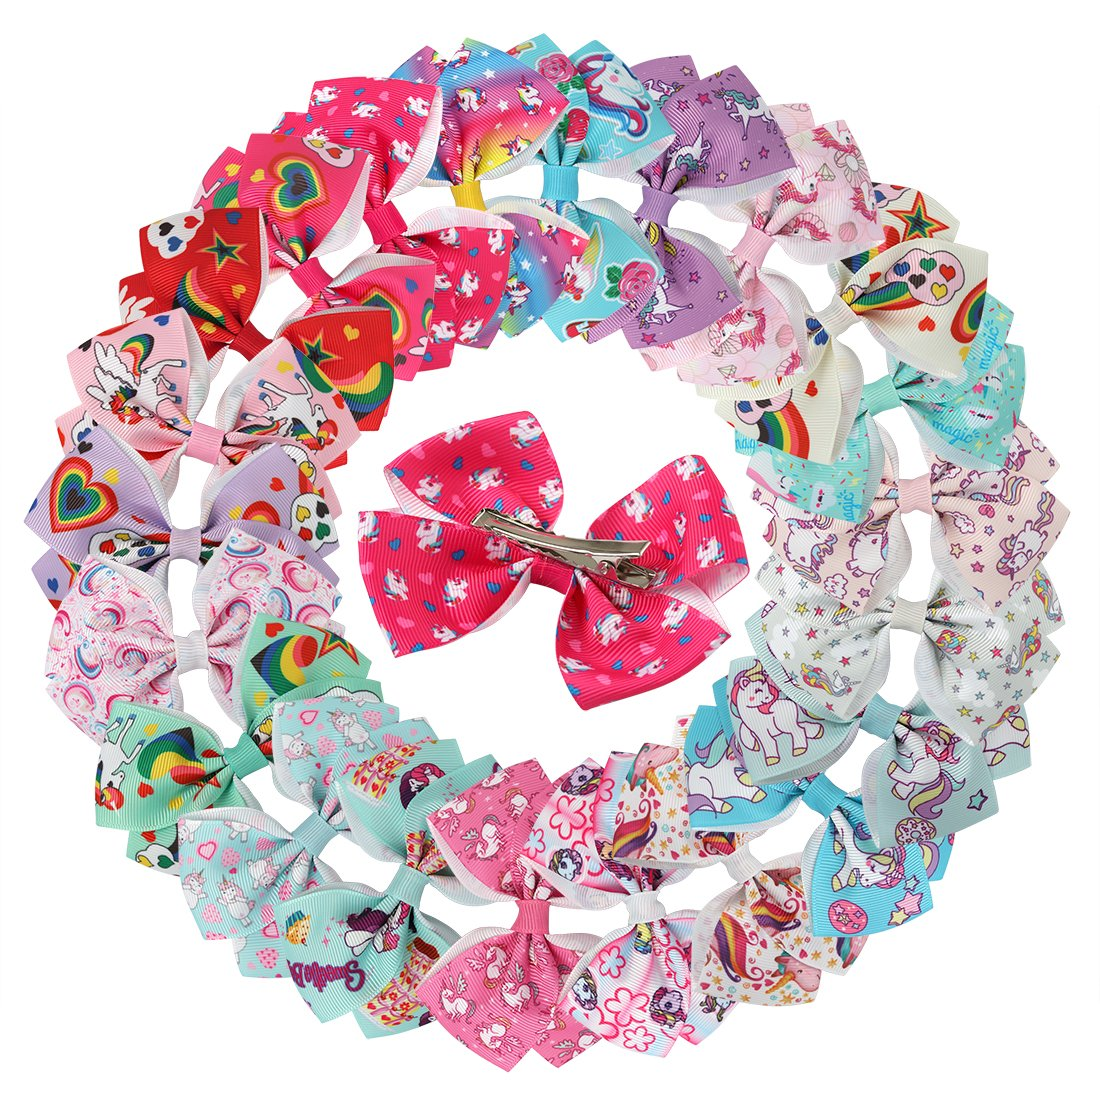 XIMA Unicorn Hair Bows Clips For Girls Women 3.5inch Grosgrain Ribbon Bows With Alligator Clips Hair Accessories (22pcs…